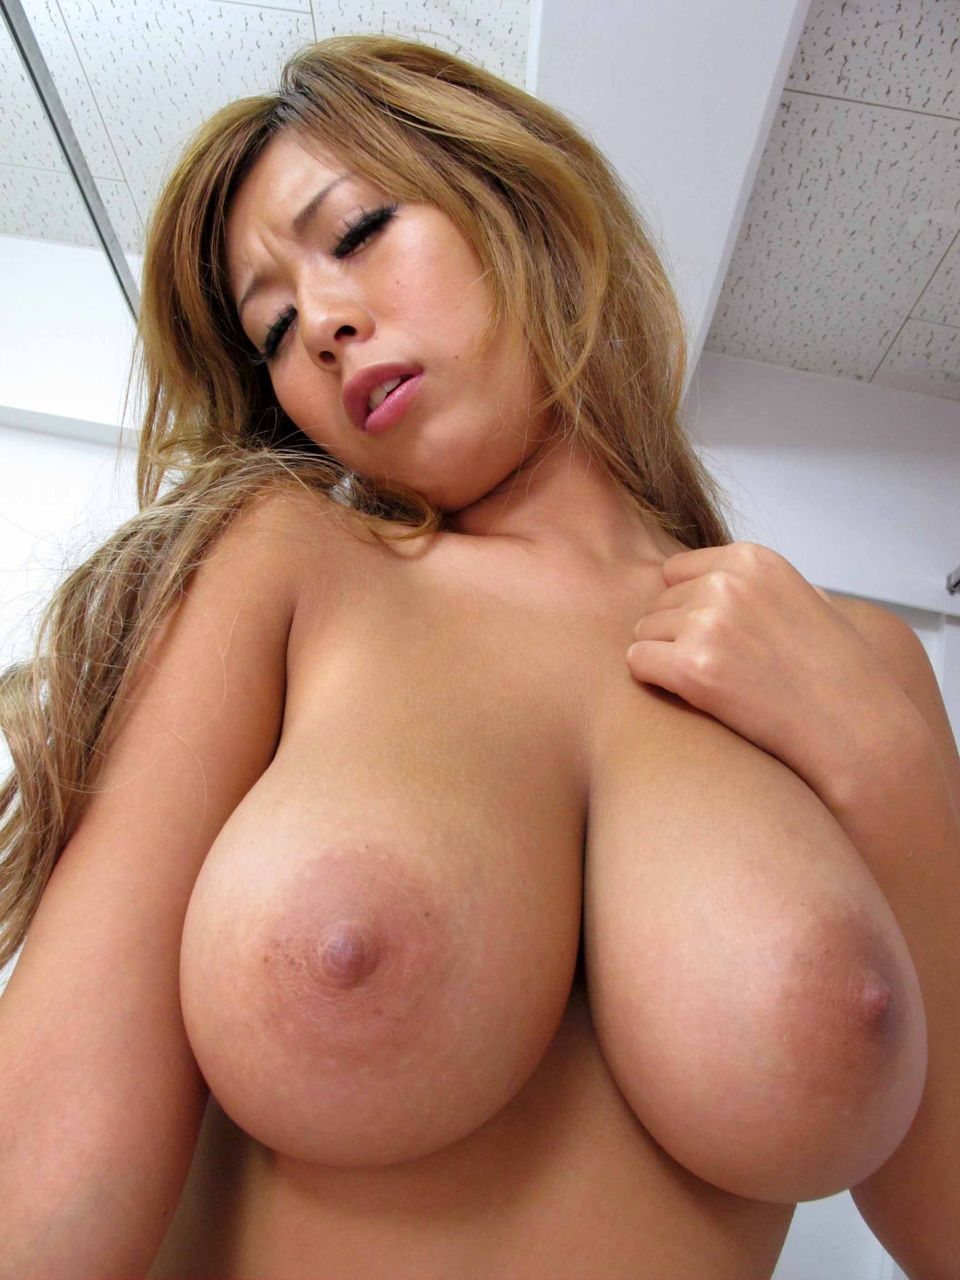 Big Tits Asian American